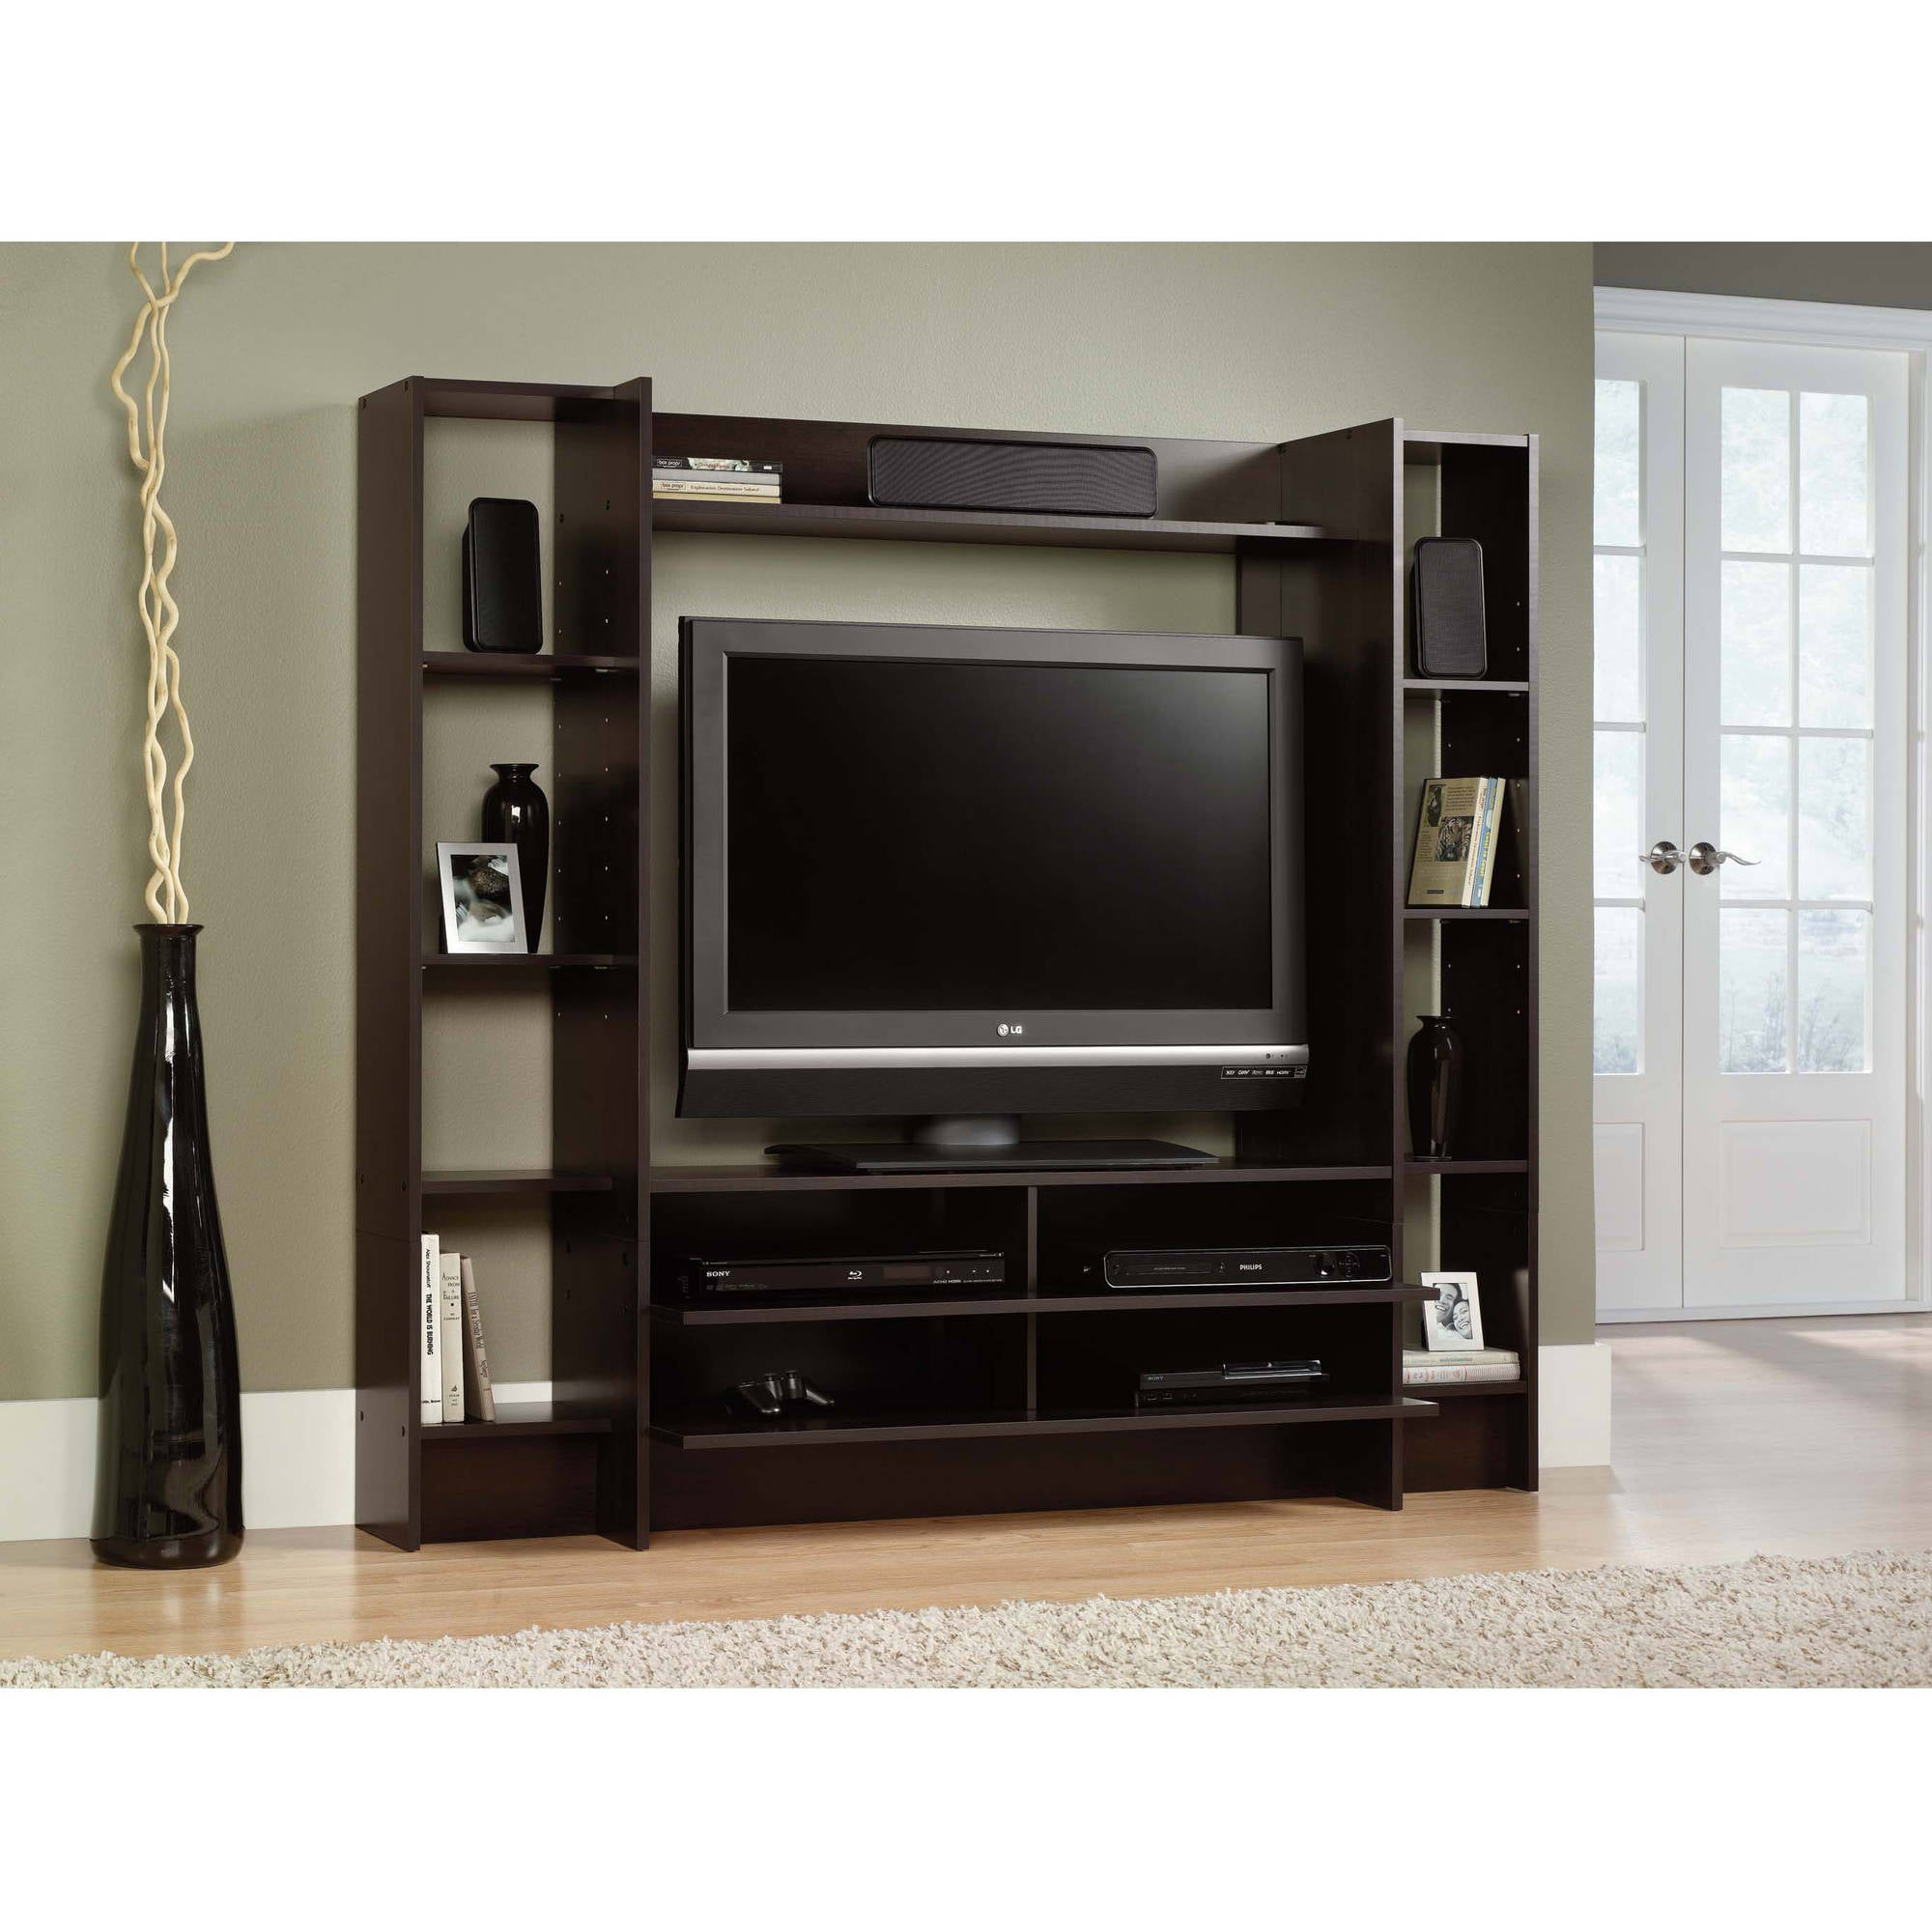 50 tv entertainment center